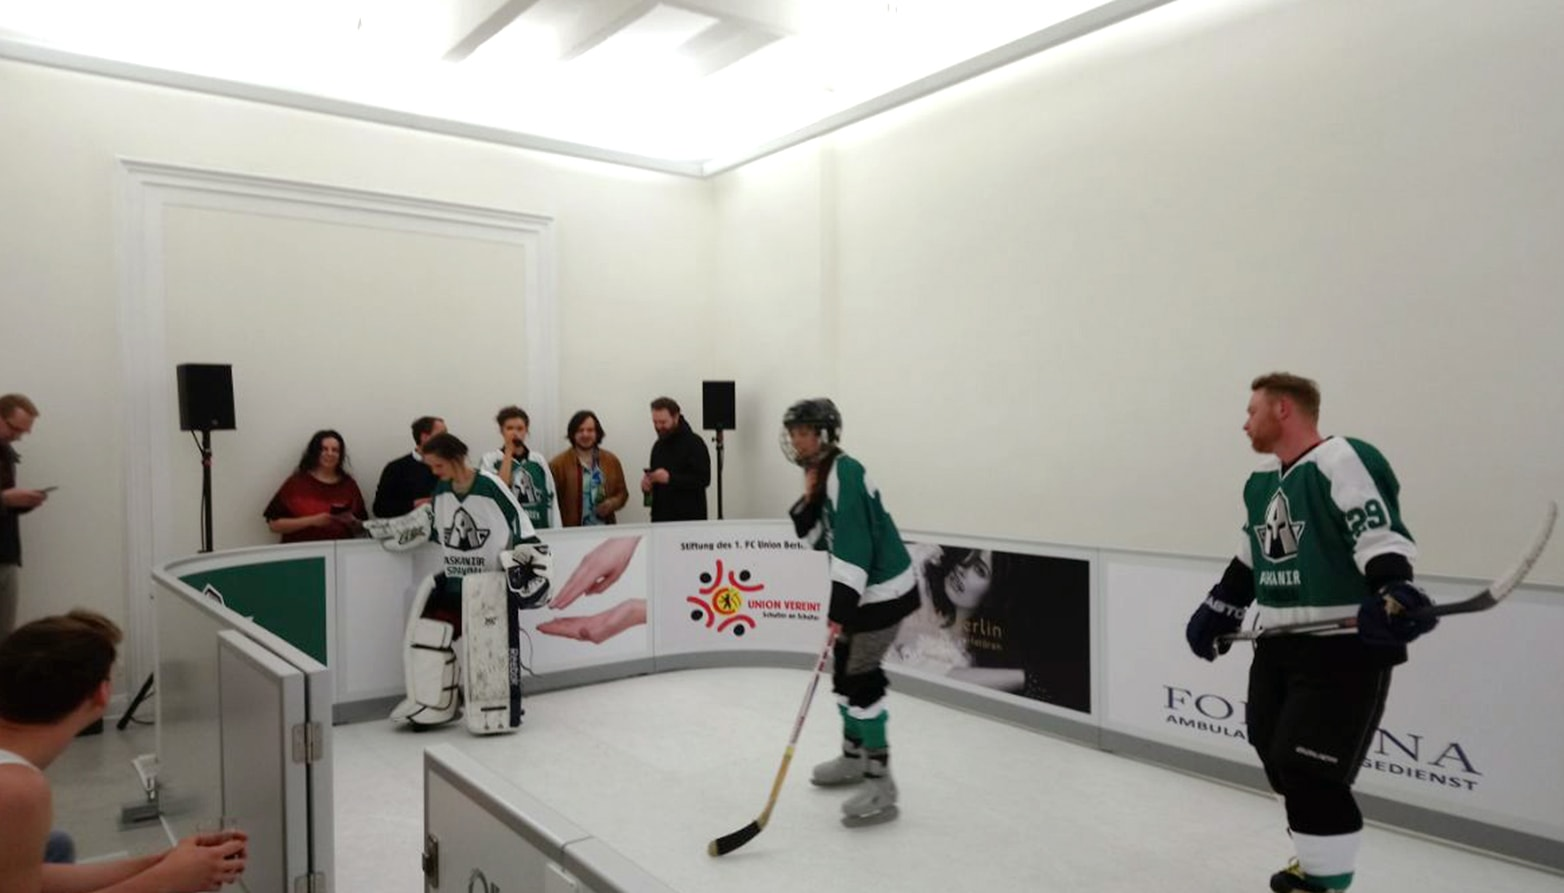 Ice hockey players playing on artificial ice surface